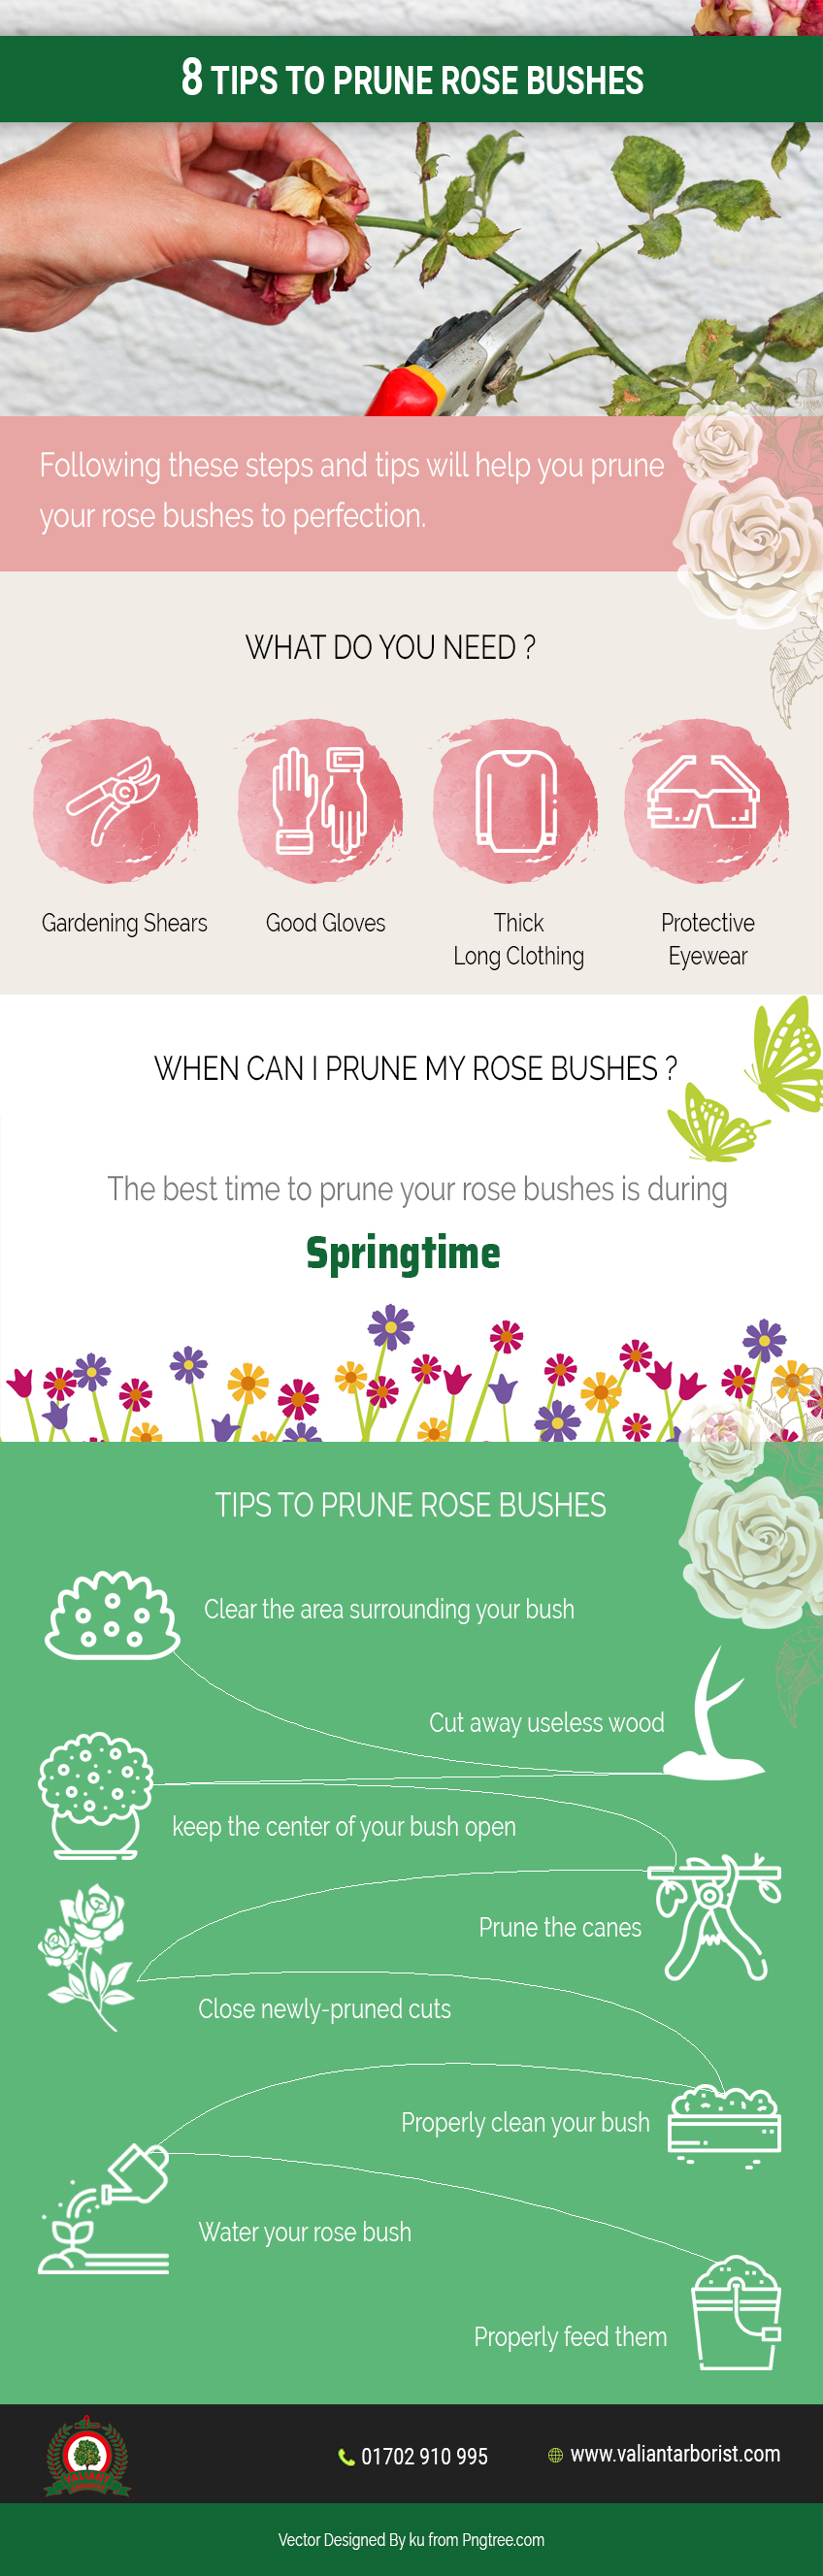 tips-to-prunerose-bushes